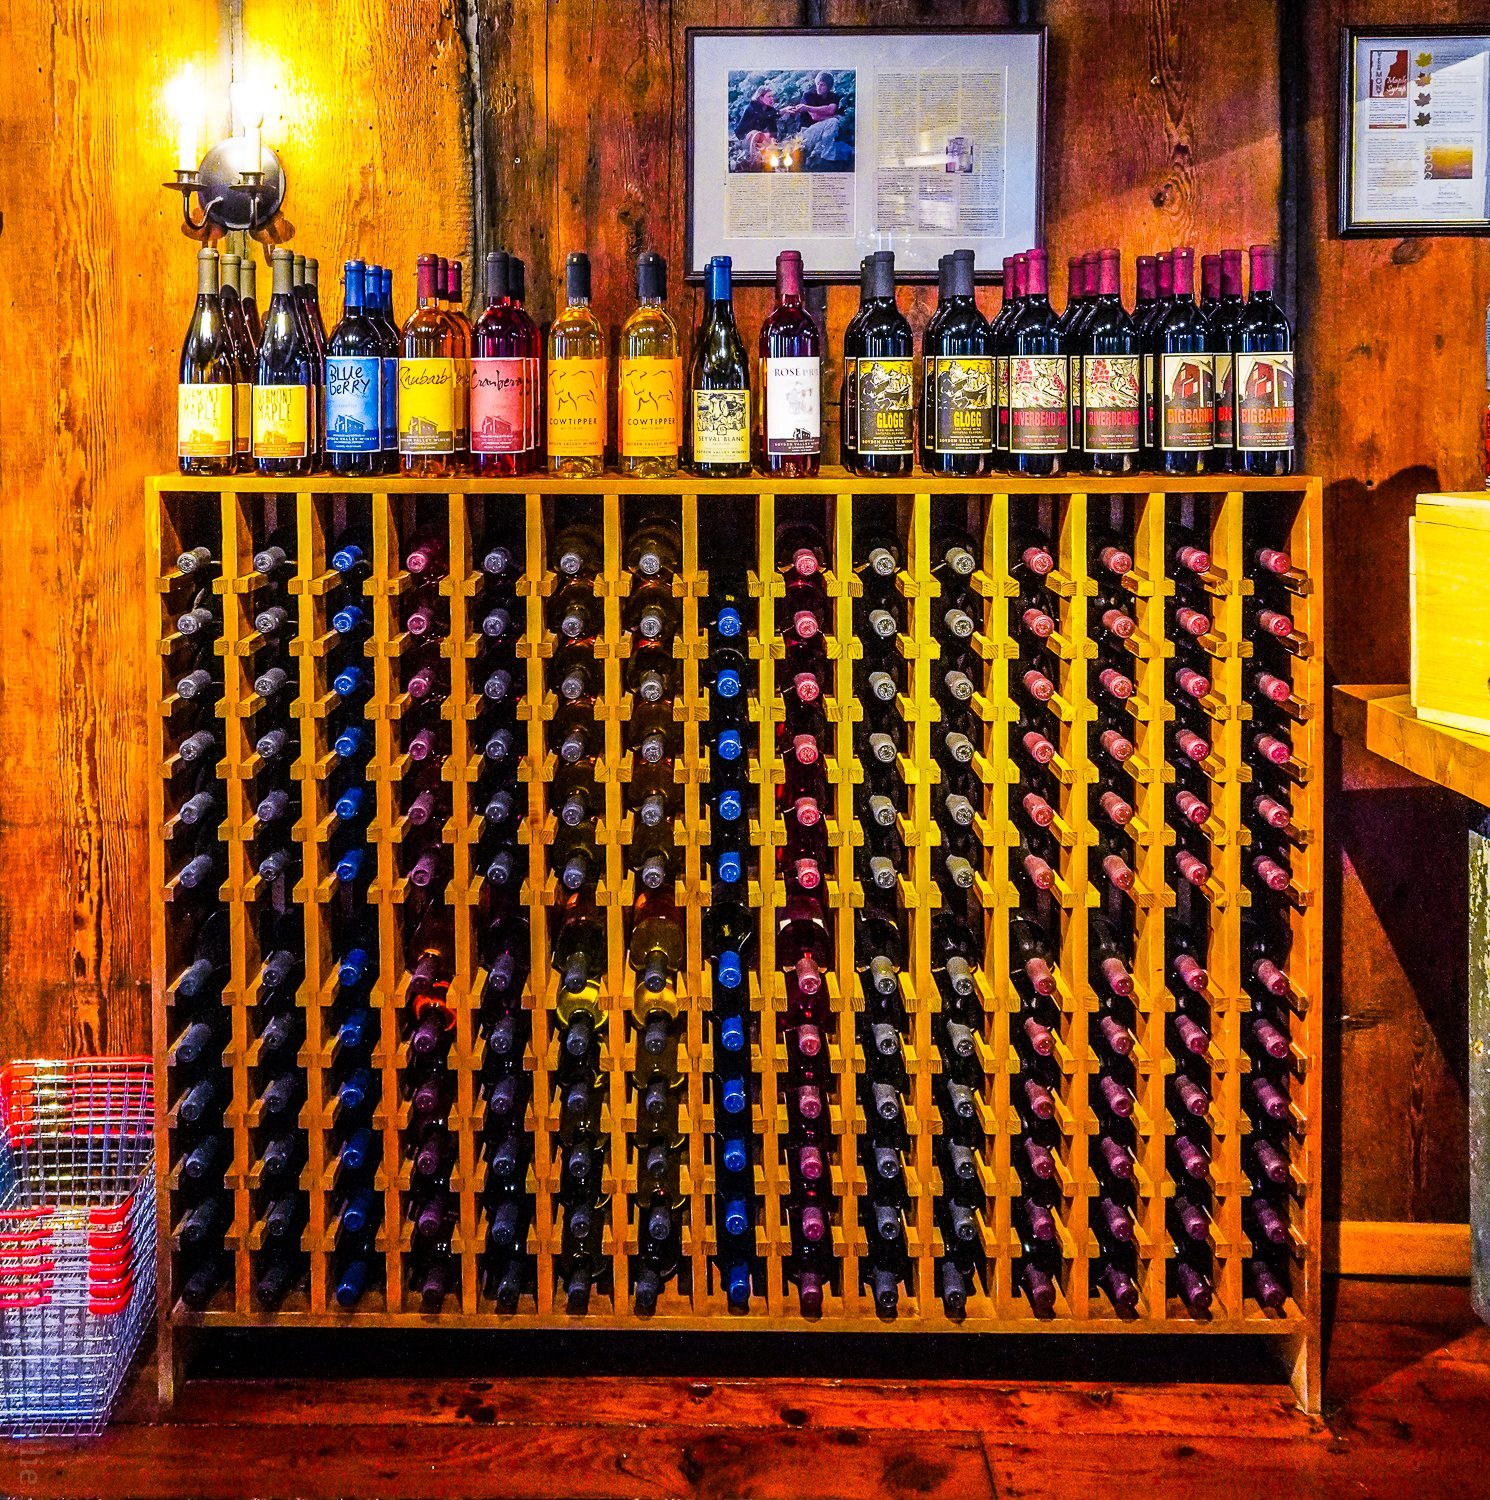 Fruit wine, ice wine, cider, and more!